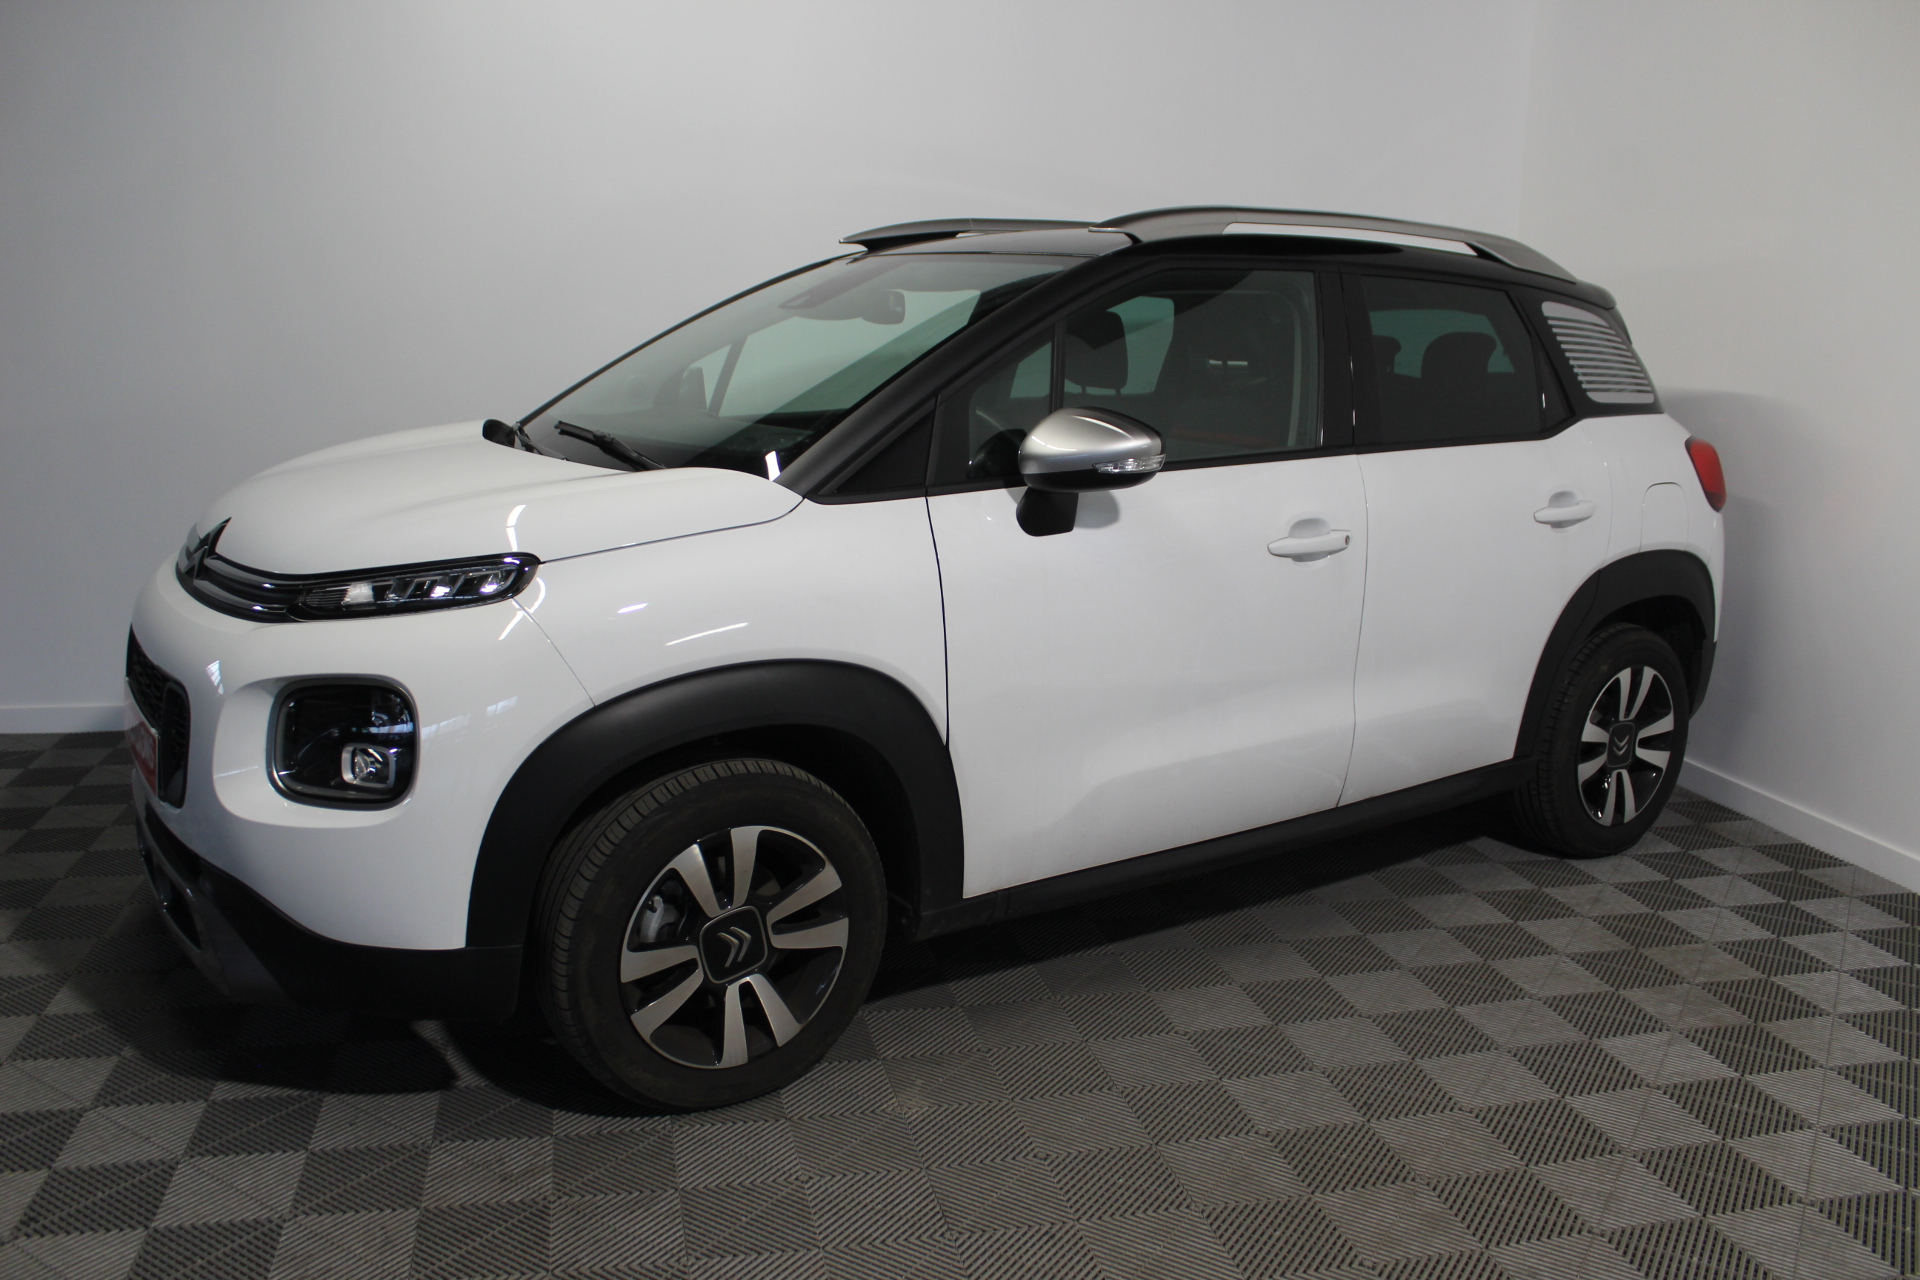 CITROEN C3 AIRCROSS BUSINESS PureTech 110 S&S BVM6 Shine Business d'occasion